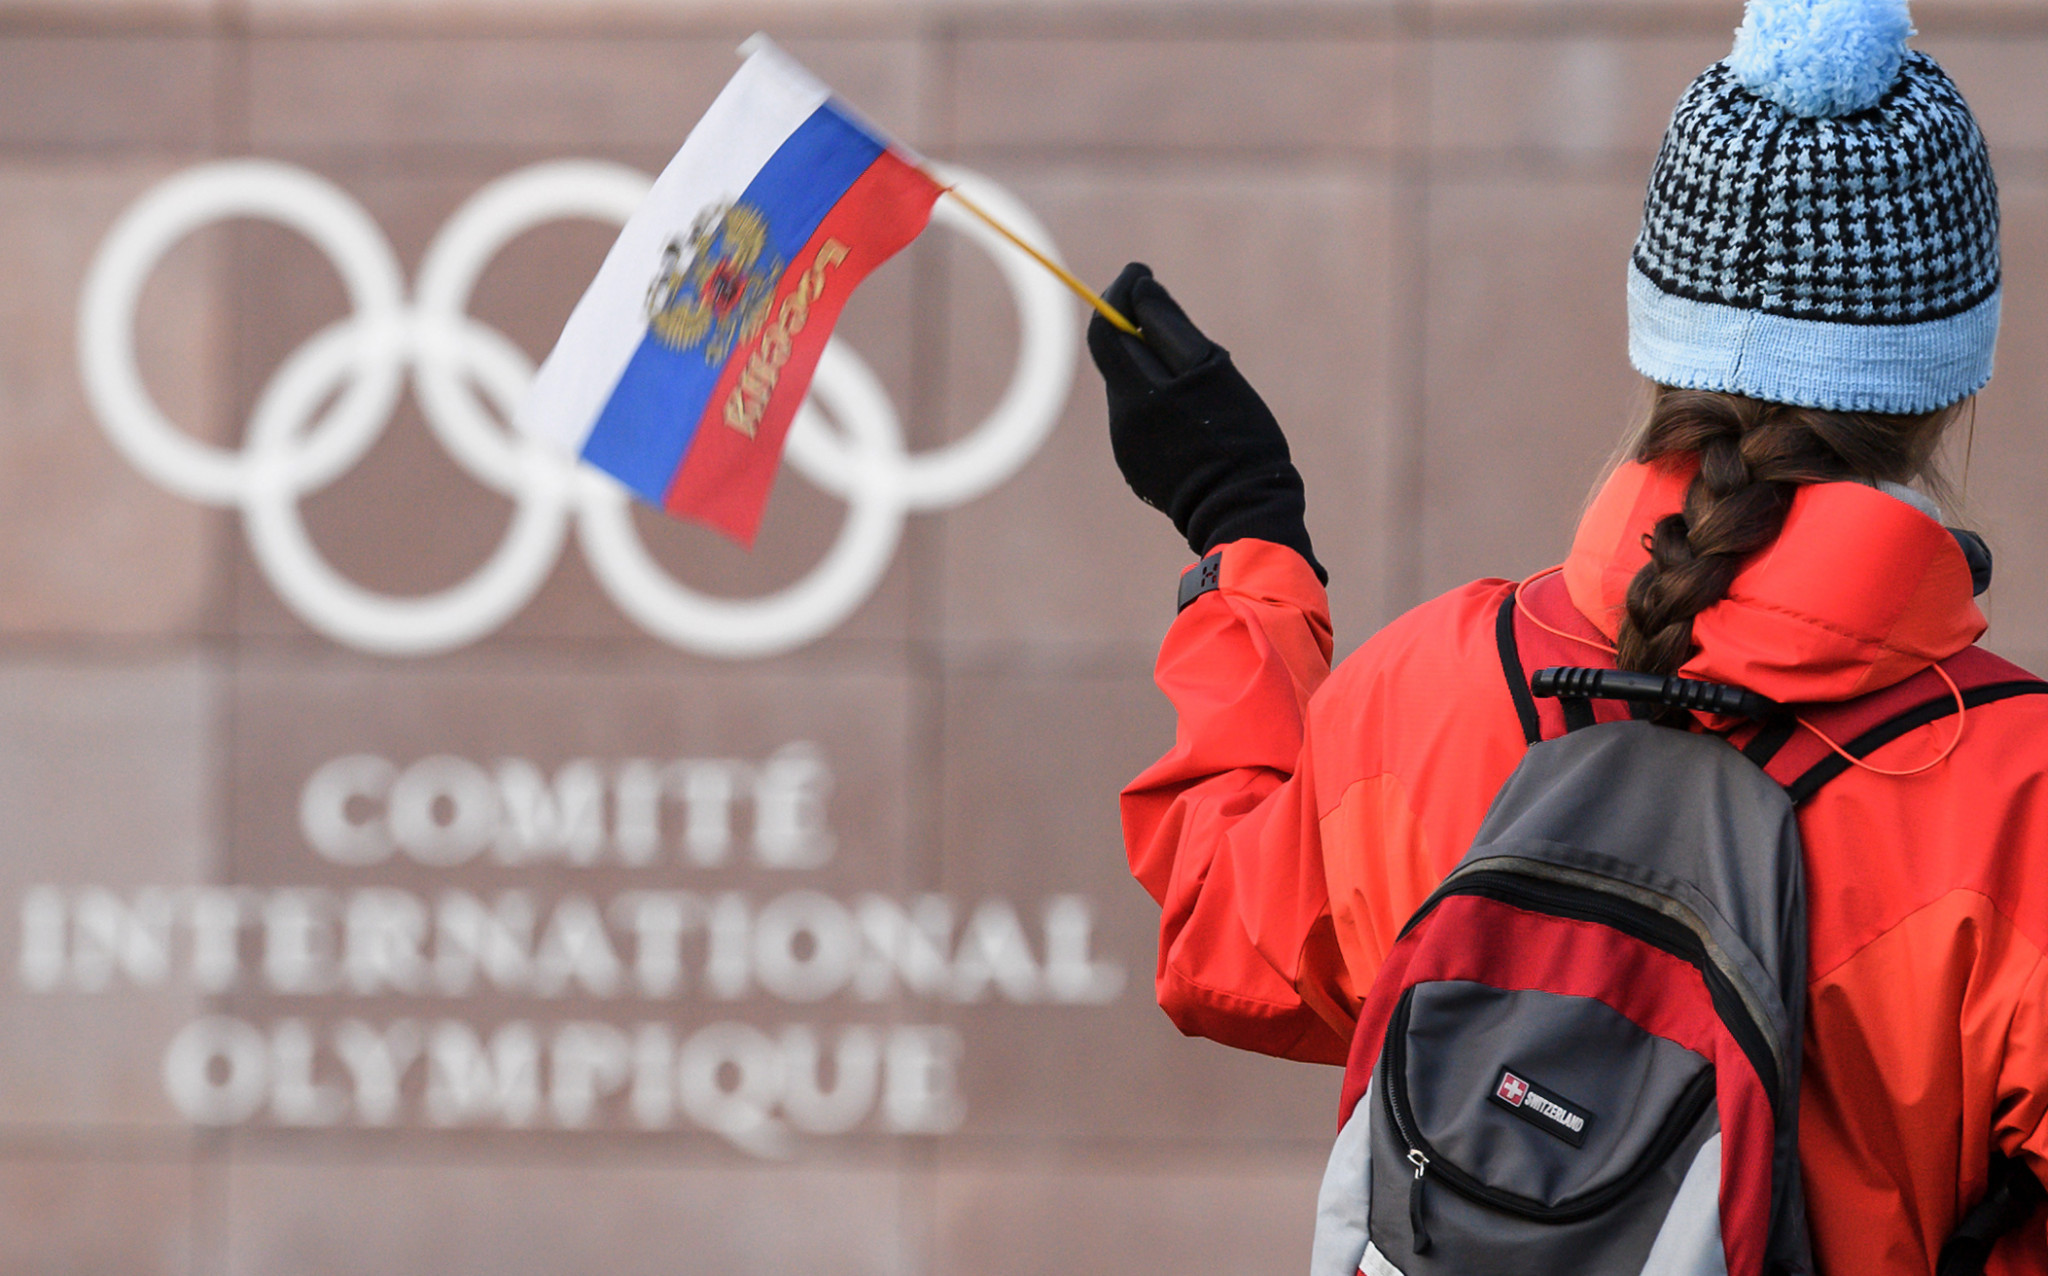 Russia's reinstatement into the Olympic Movement has been described as